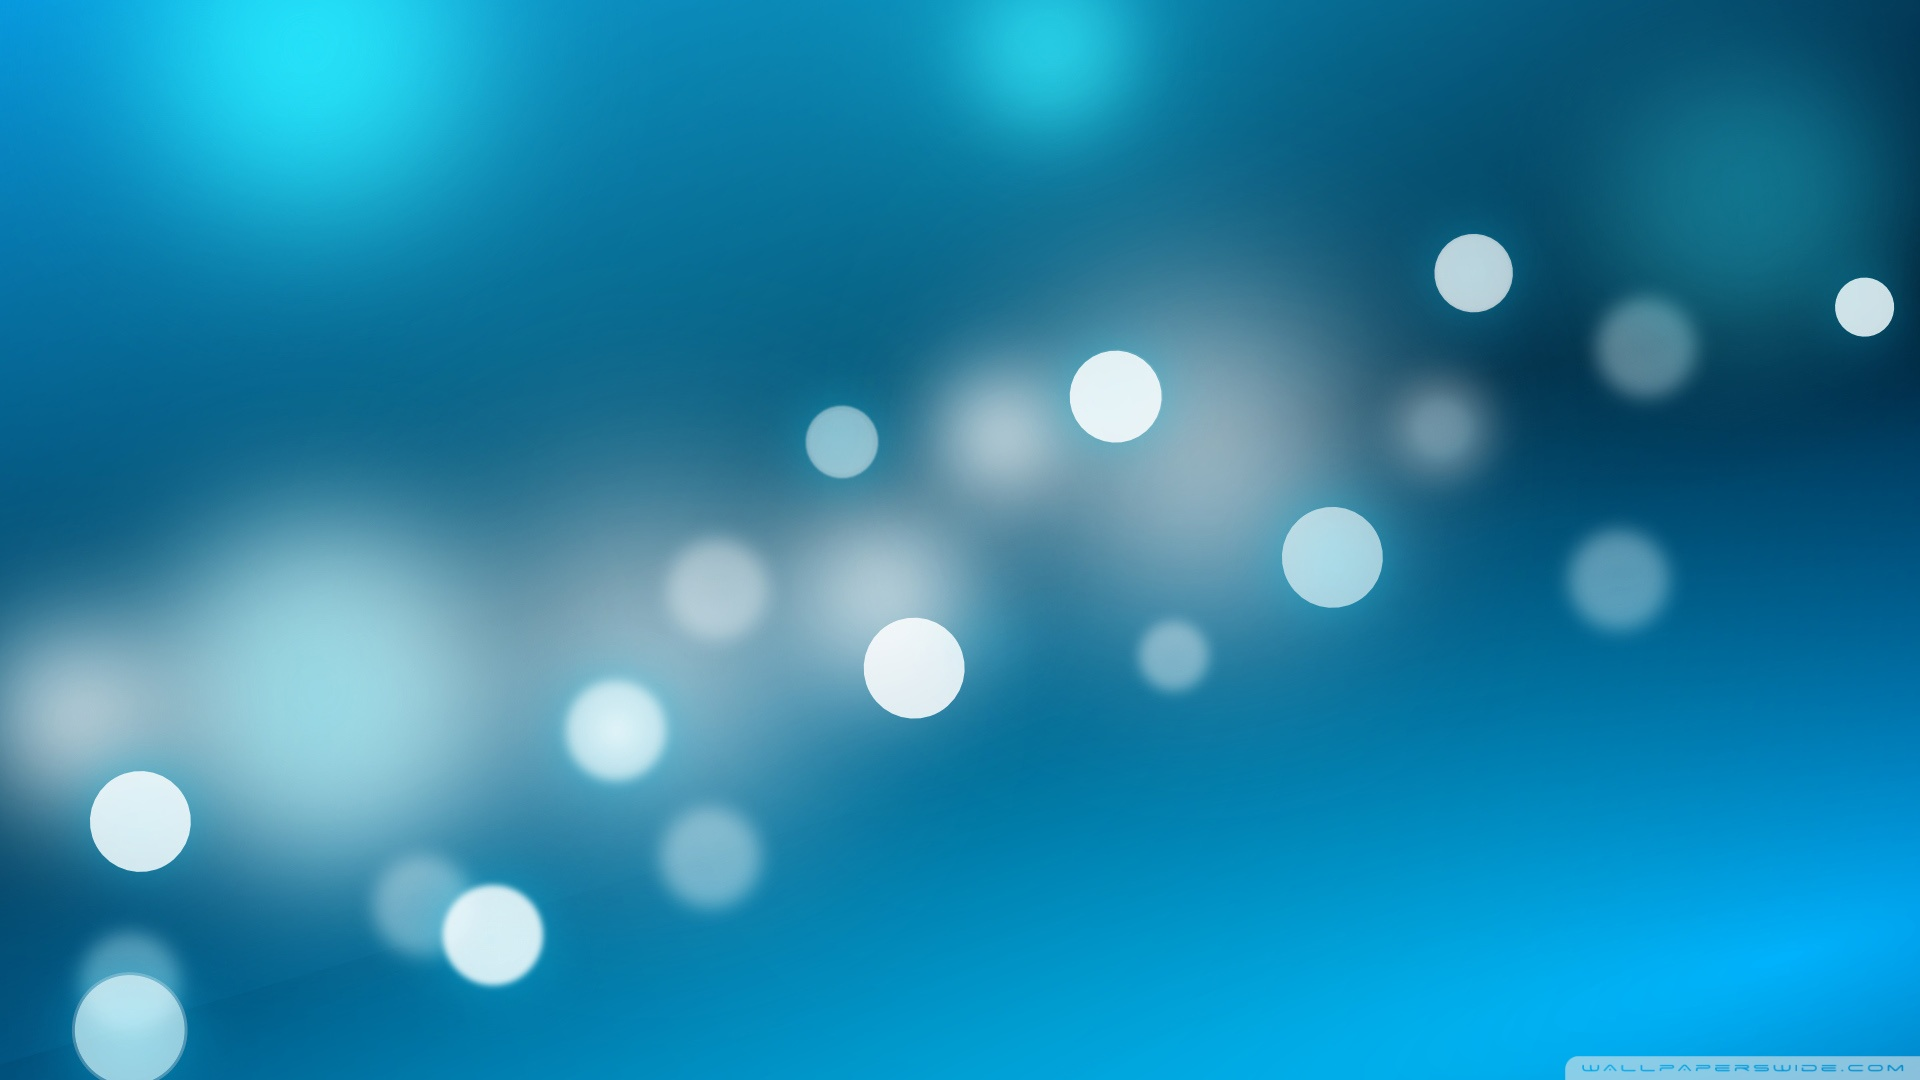 free blue wallpaper and - photo #49